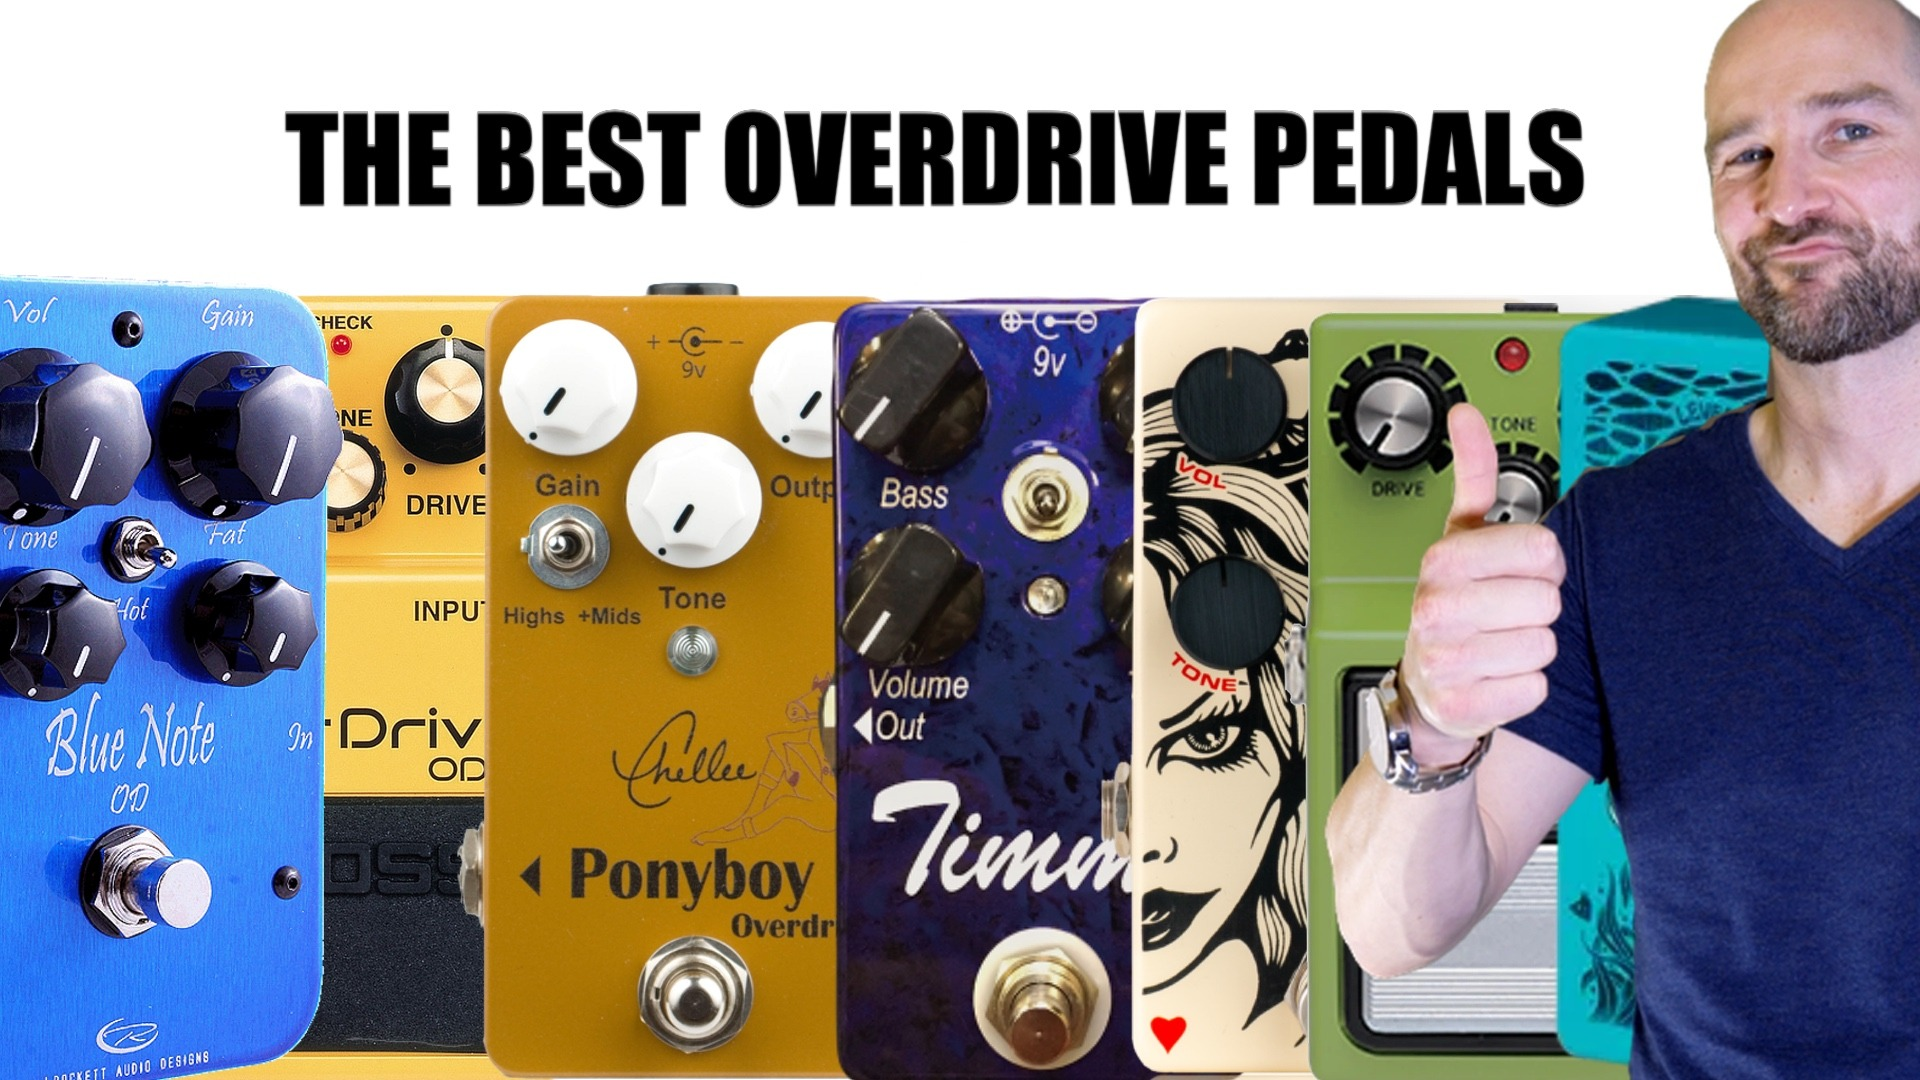 The Best Overdrive Pedals - The Definitive List